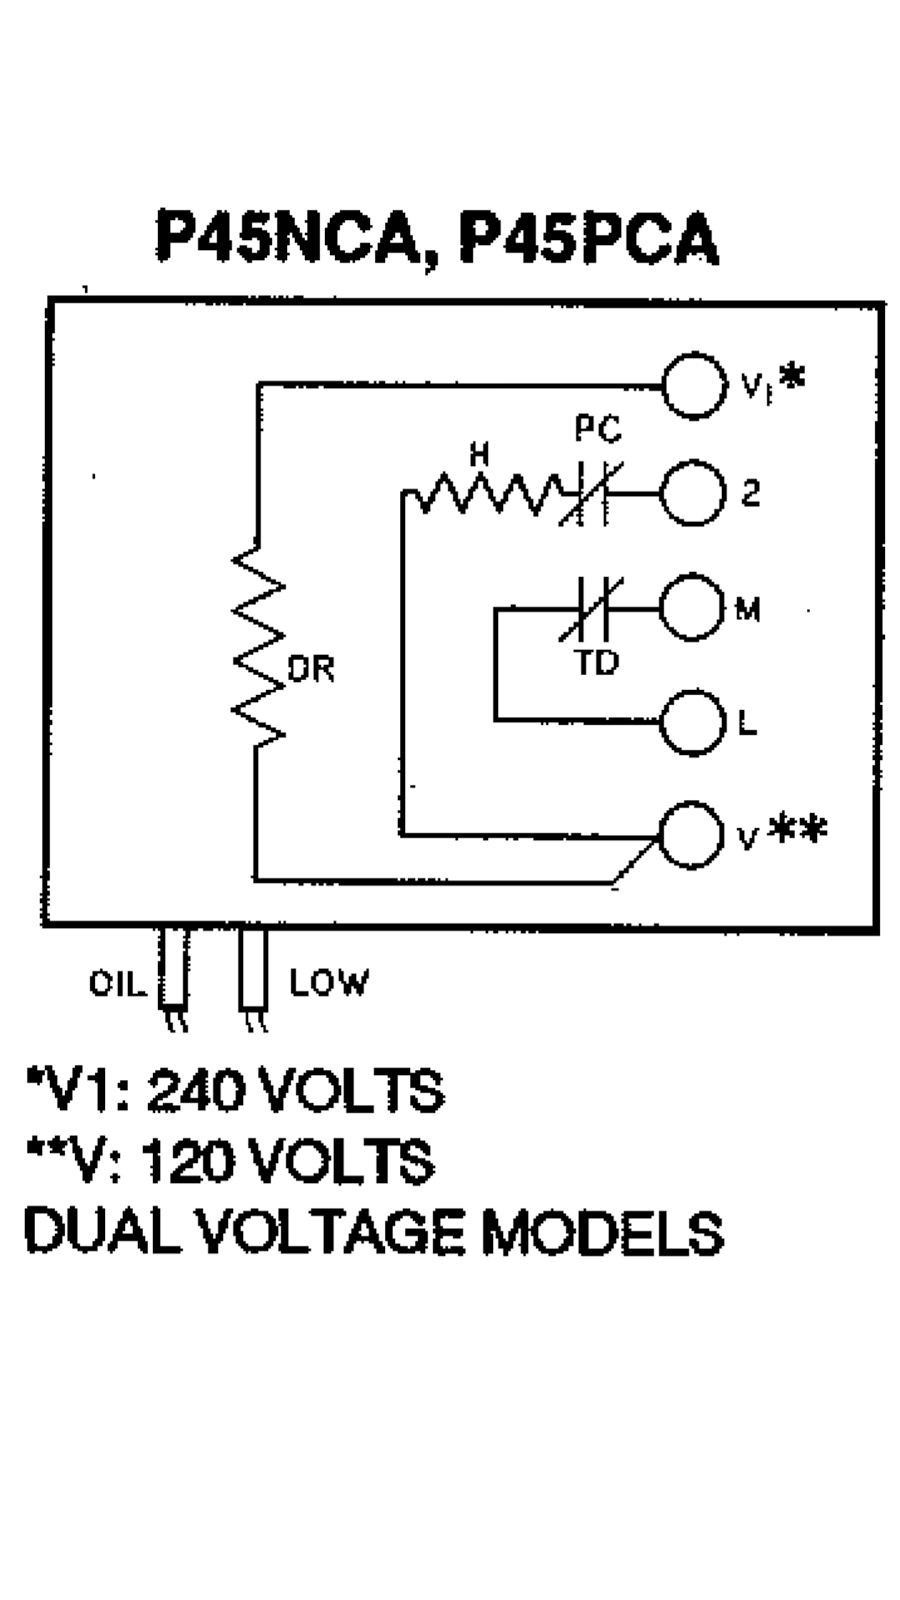 Mitsubishi Oil Gauge Wiring Diagram Diagrams Instruction Wira Fuse Box The Same Switch In A Warm Ambient Is Going To Time Out Faster Than It Would Electrical